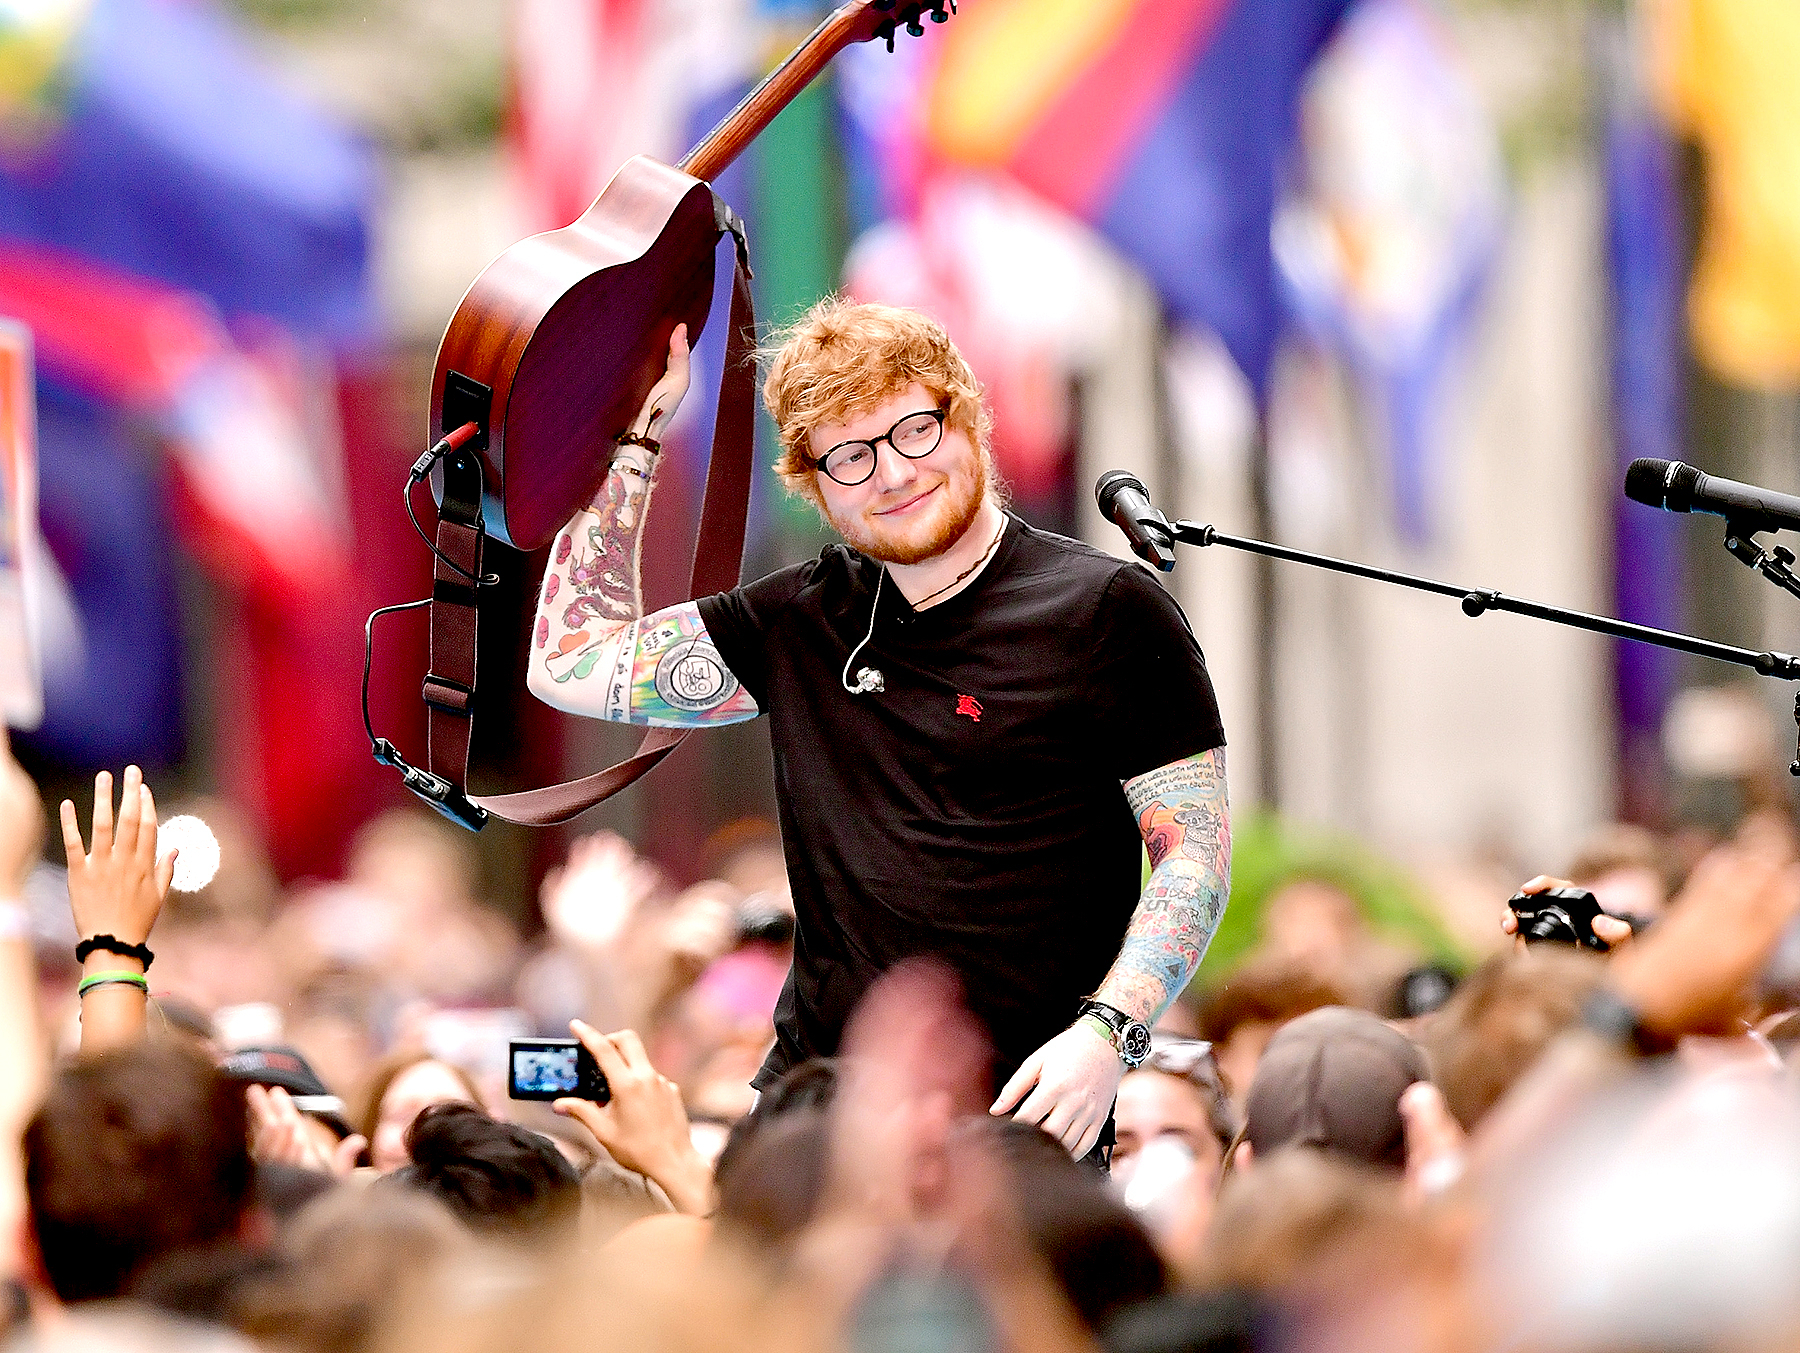 Ed Sheeran performs on NBC's 'Today' show at Rockefeller Center on July 6, 2017 in New York City.